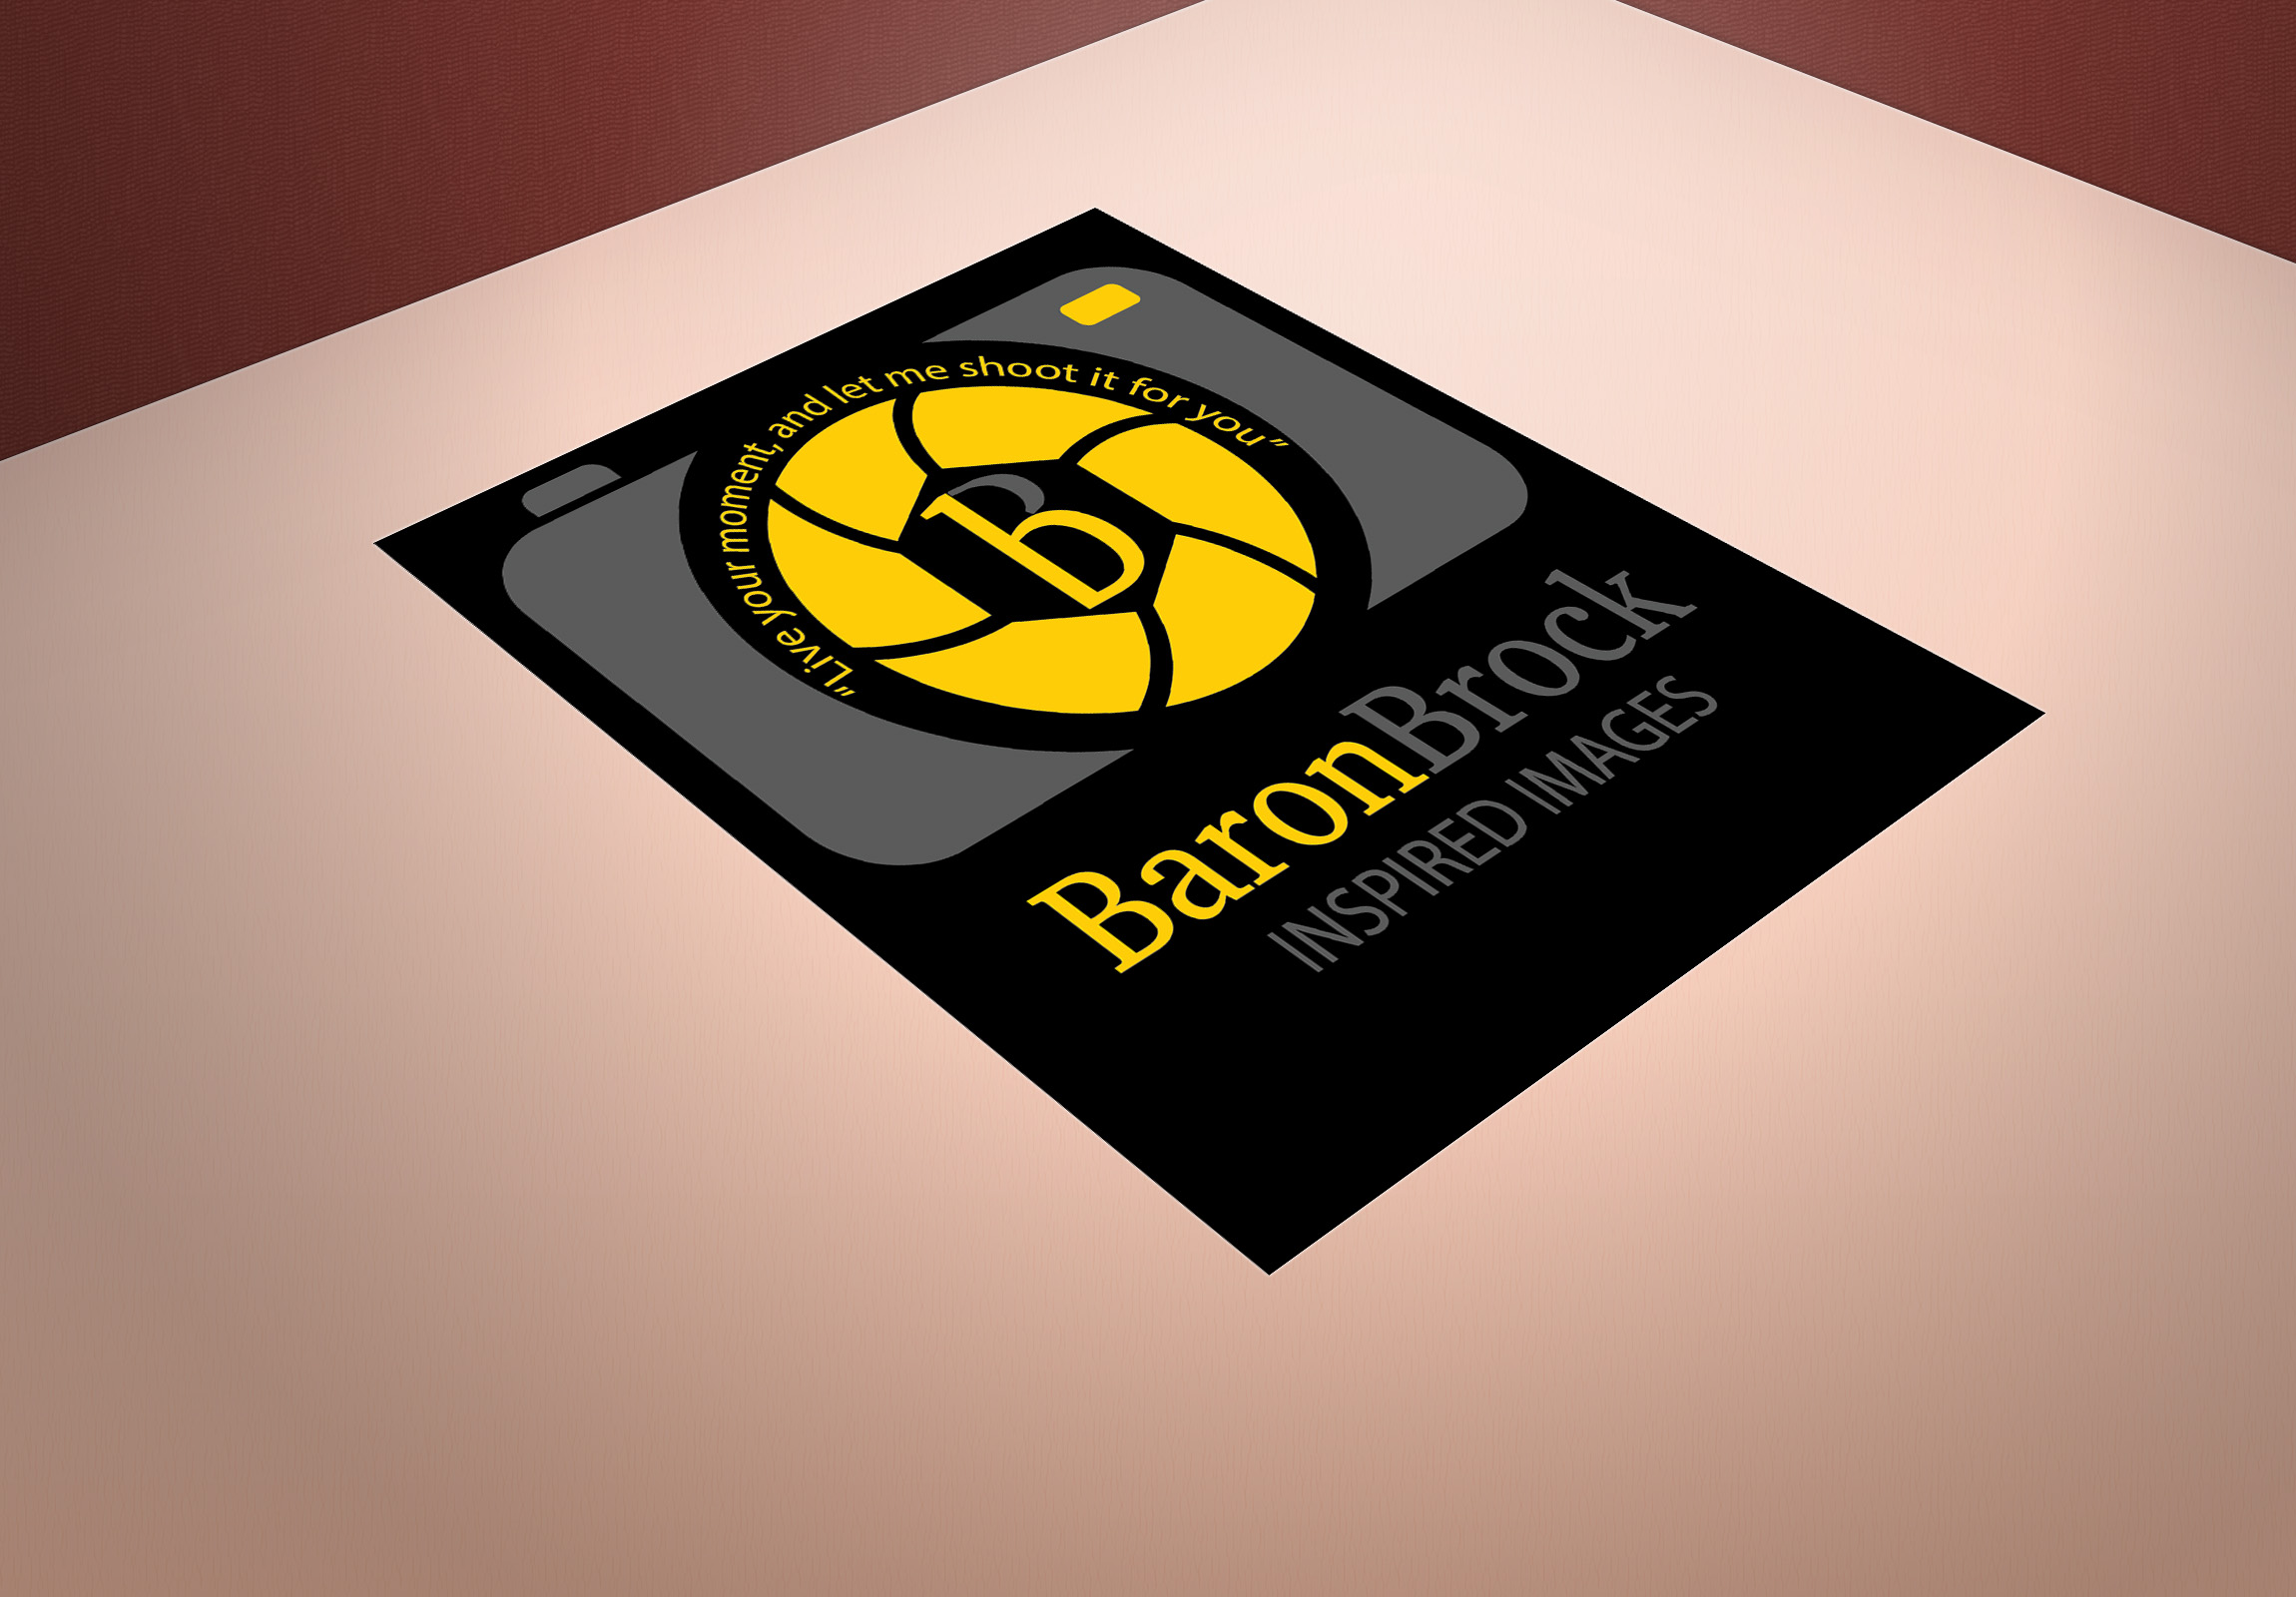 Baron Brock Inspired Images Logo